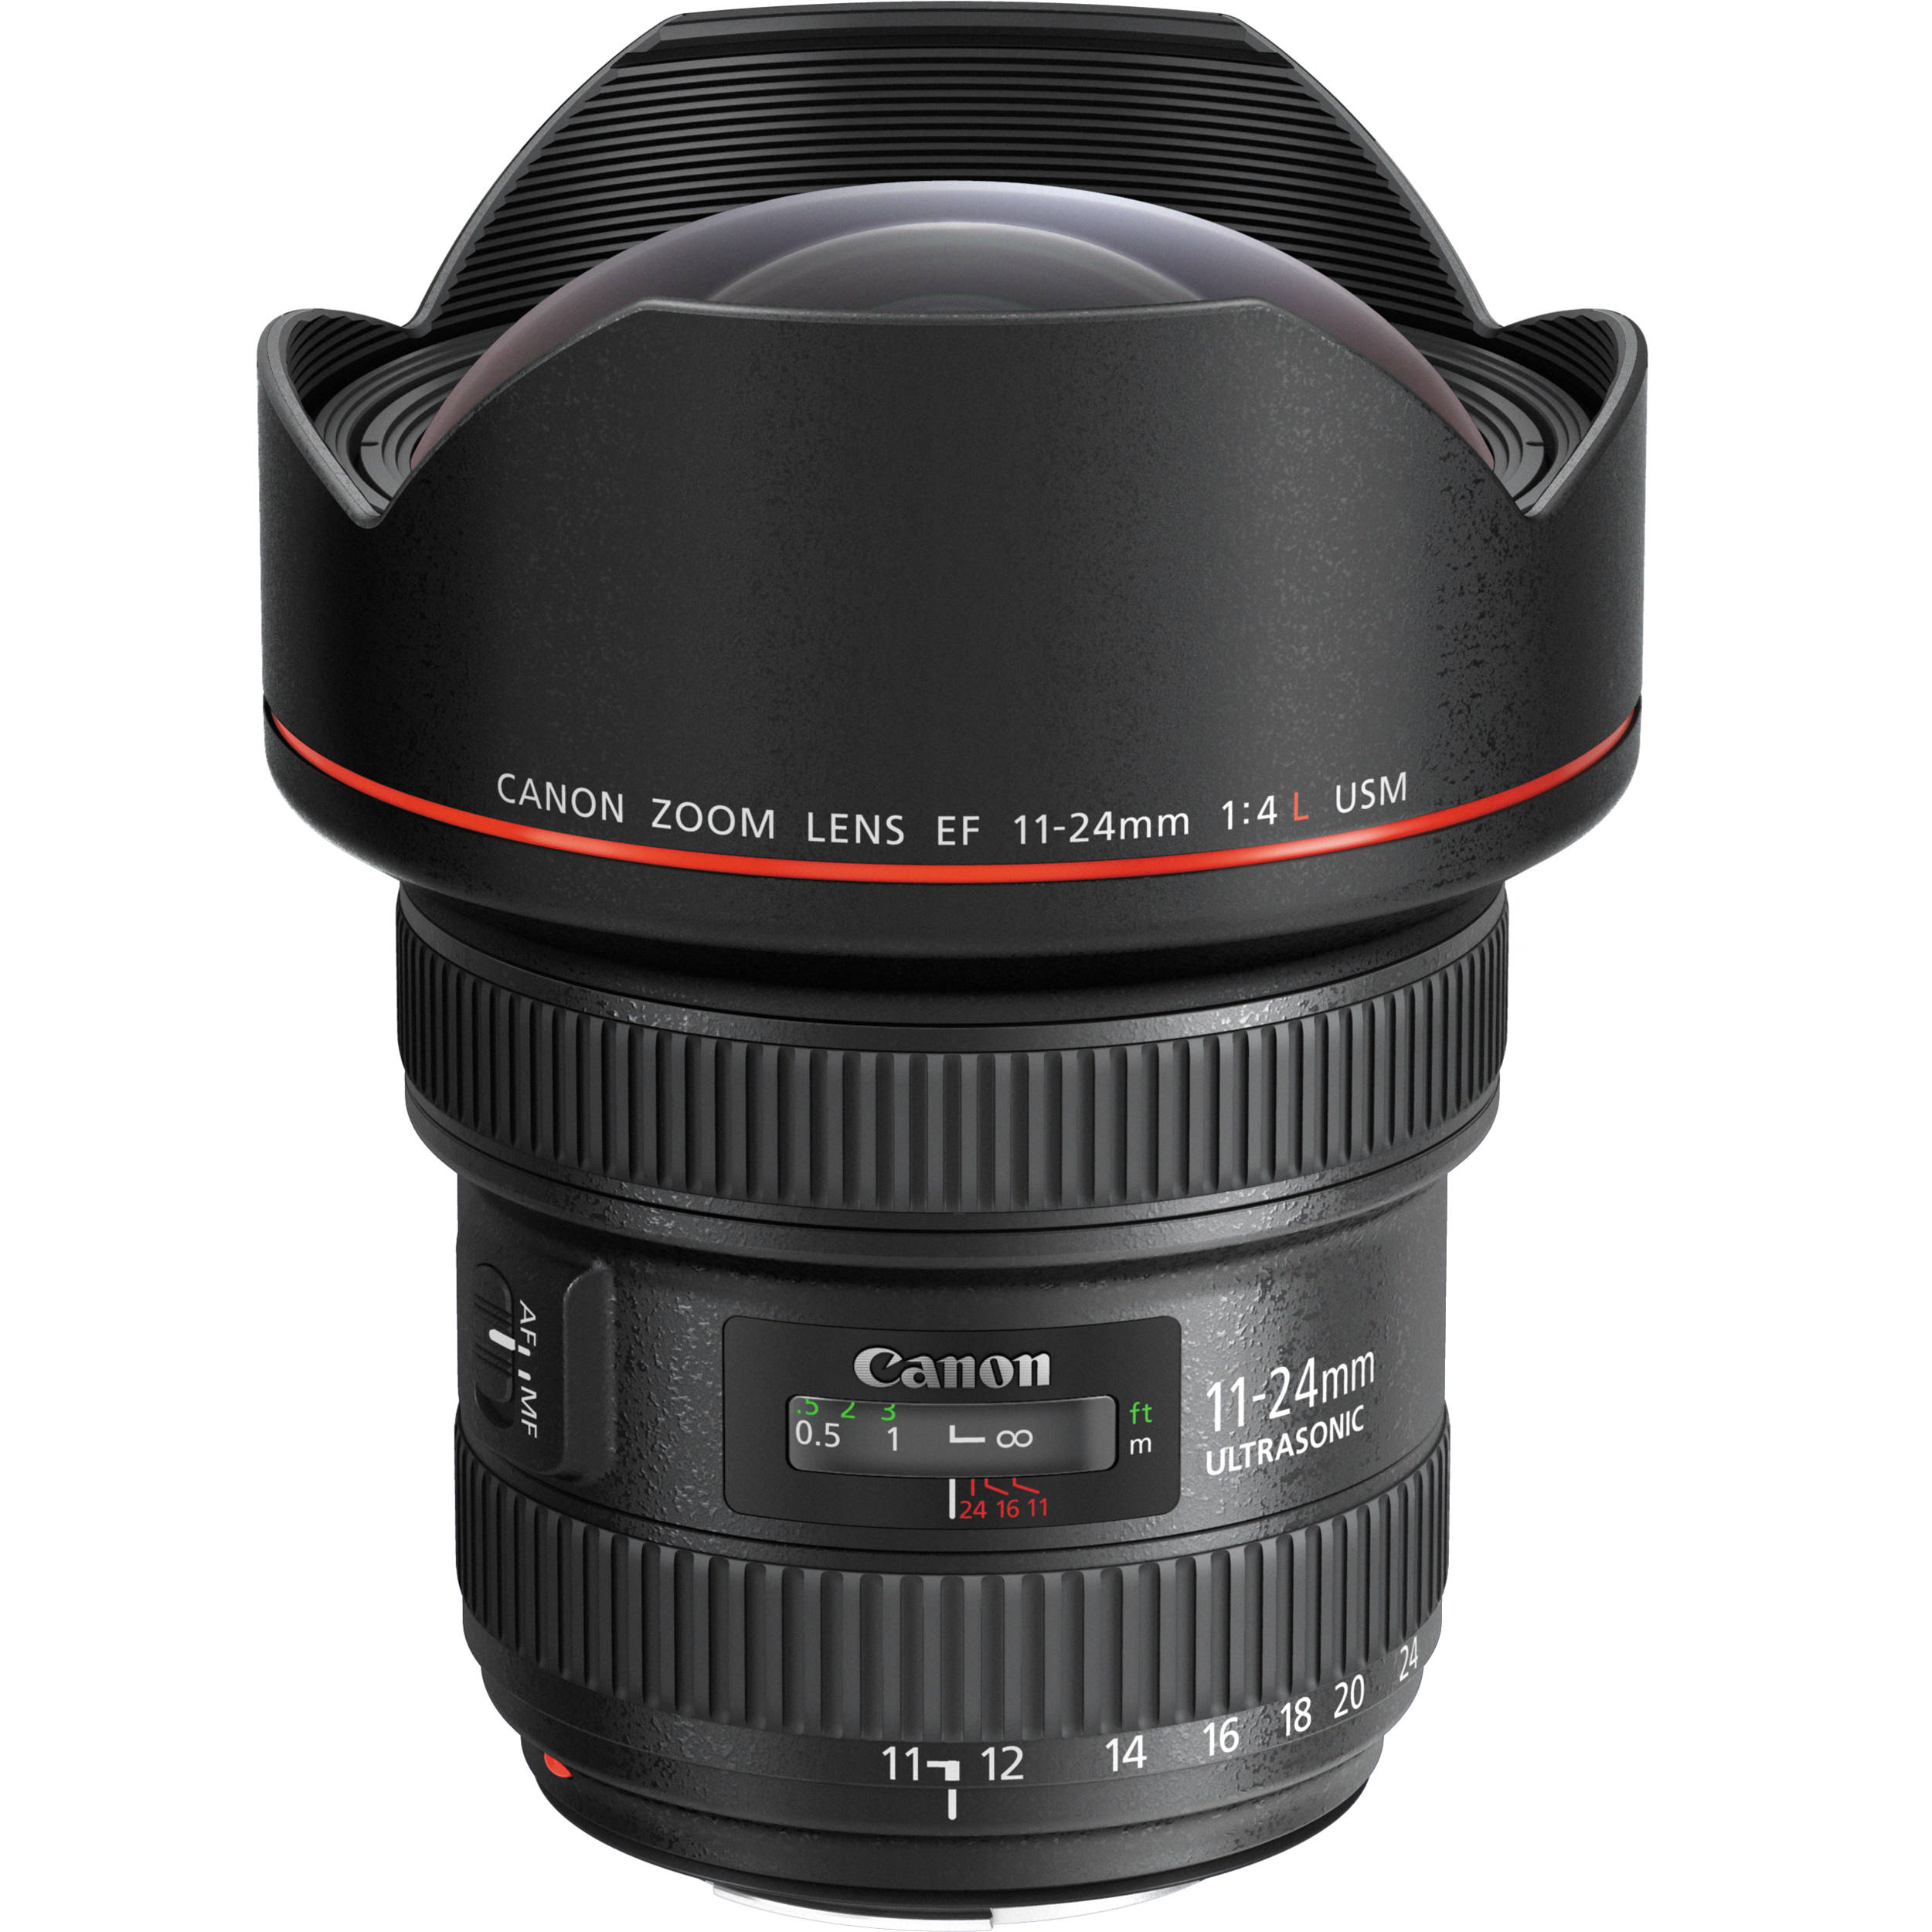 Canon 11-24mm f/4L Lens Hire Rent - Camera Hire Australia